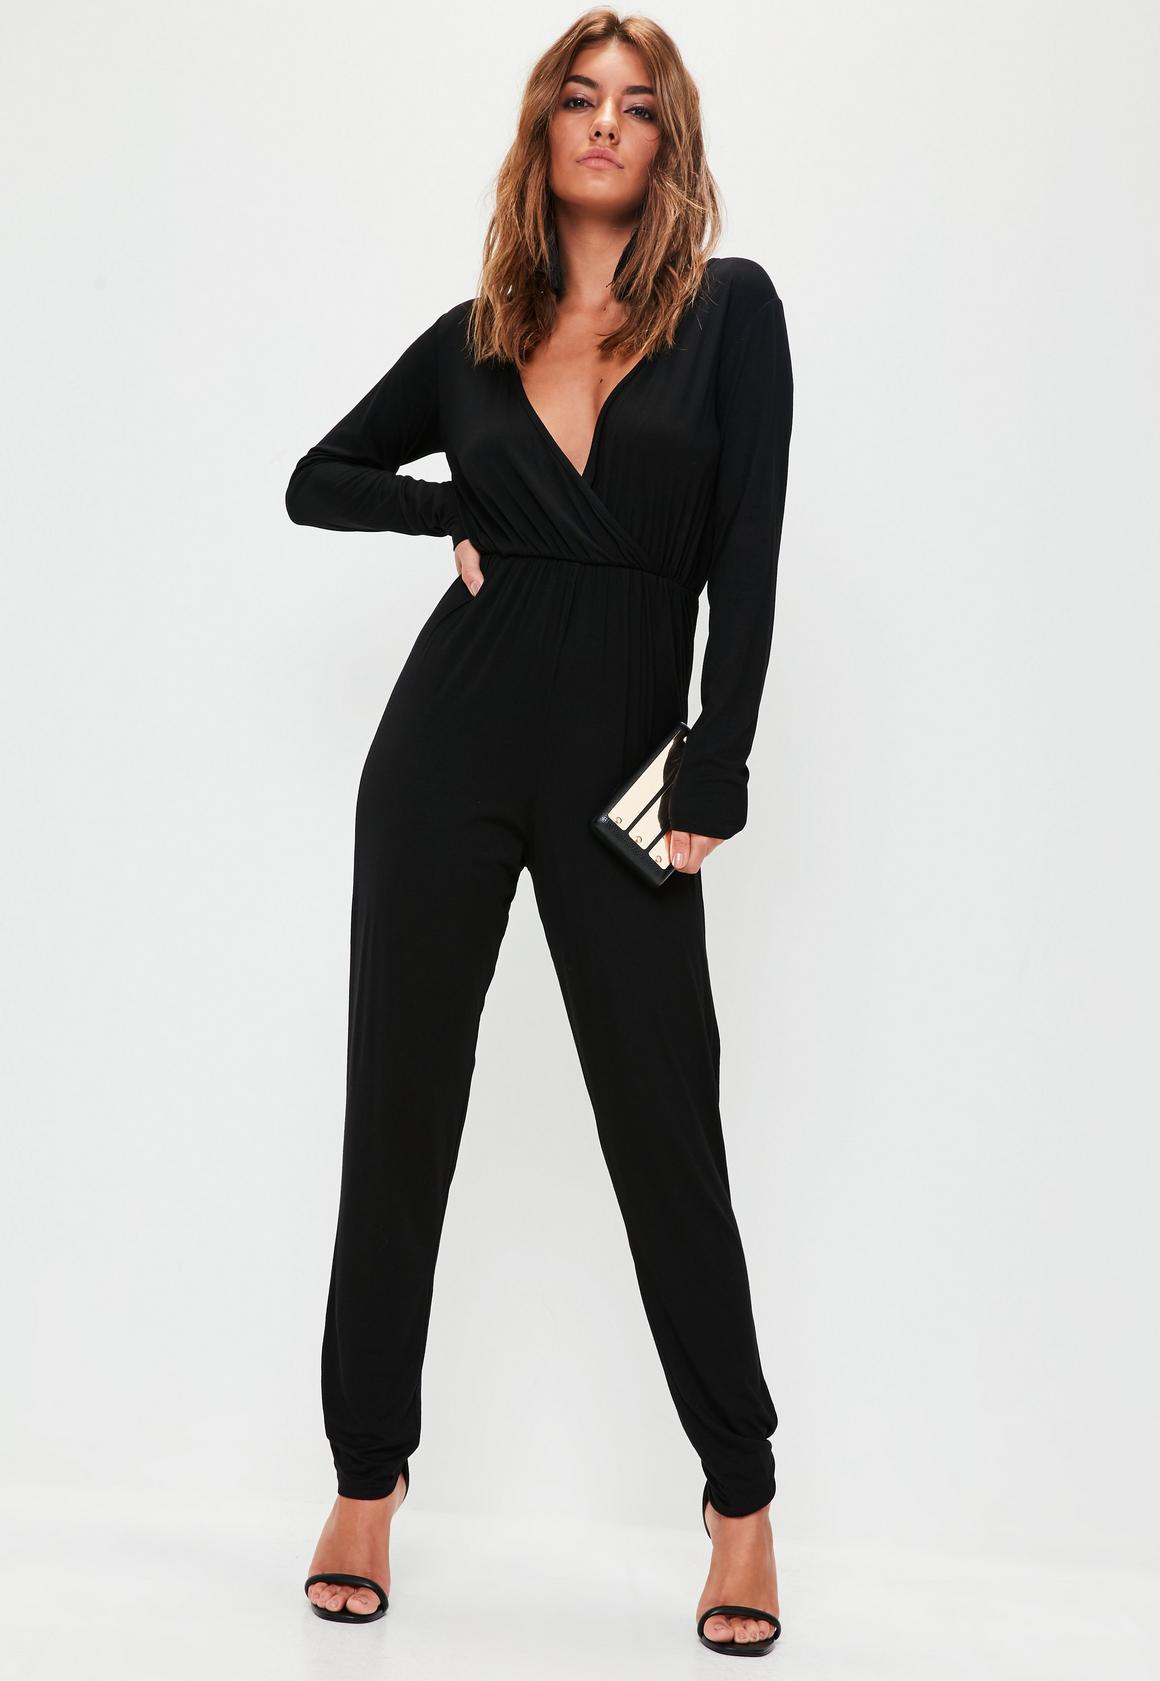 Wrap Long Sleeve Jumpsuit Black - Jumpsuits - Missguided